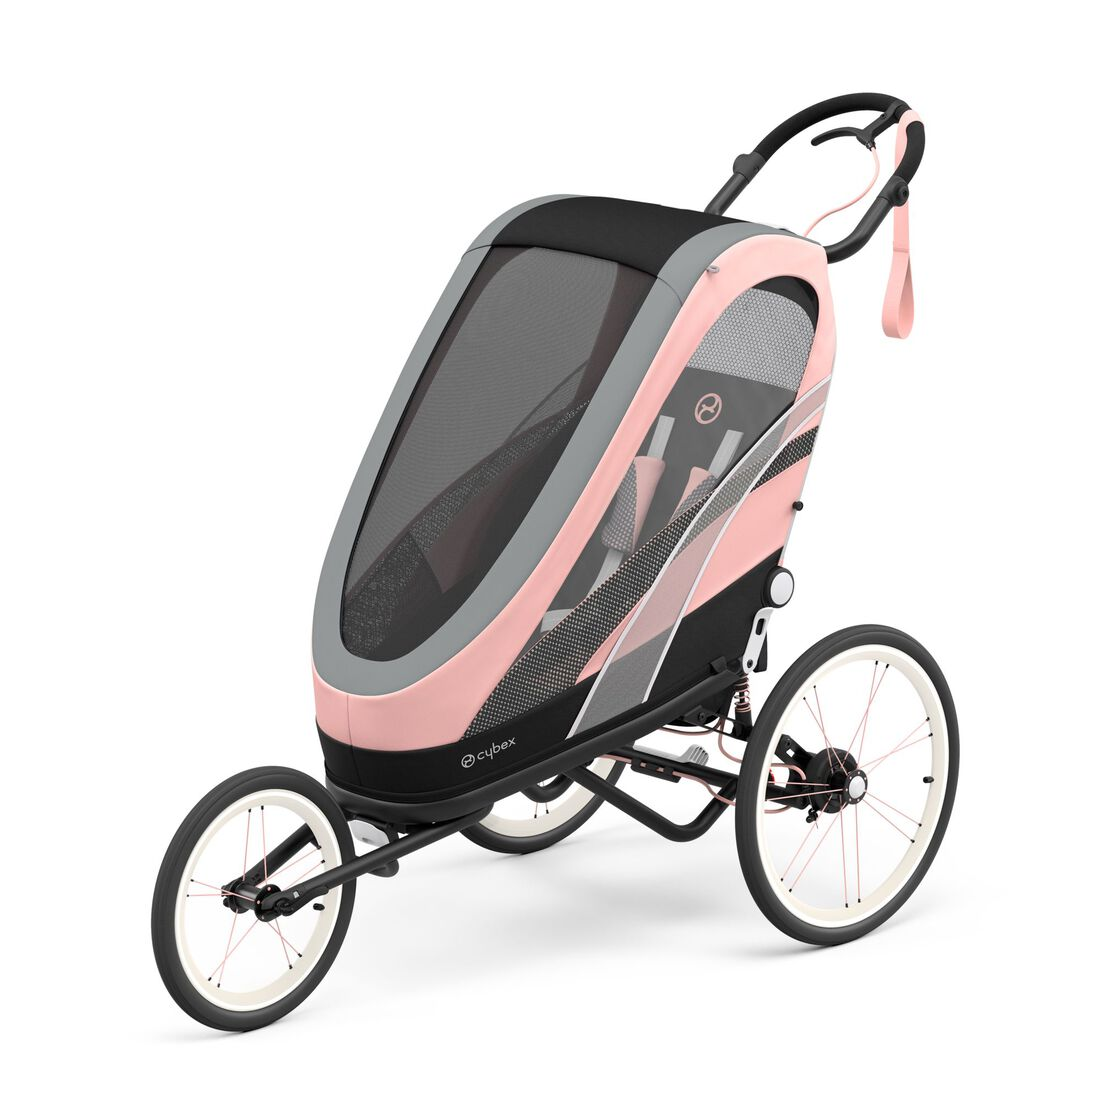 CYBEX Zeno Seat Pack - Silver Pink in Silver Pink large image number 2